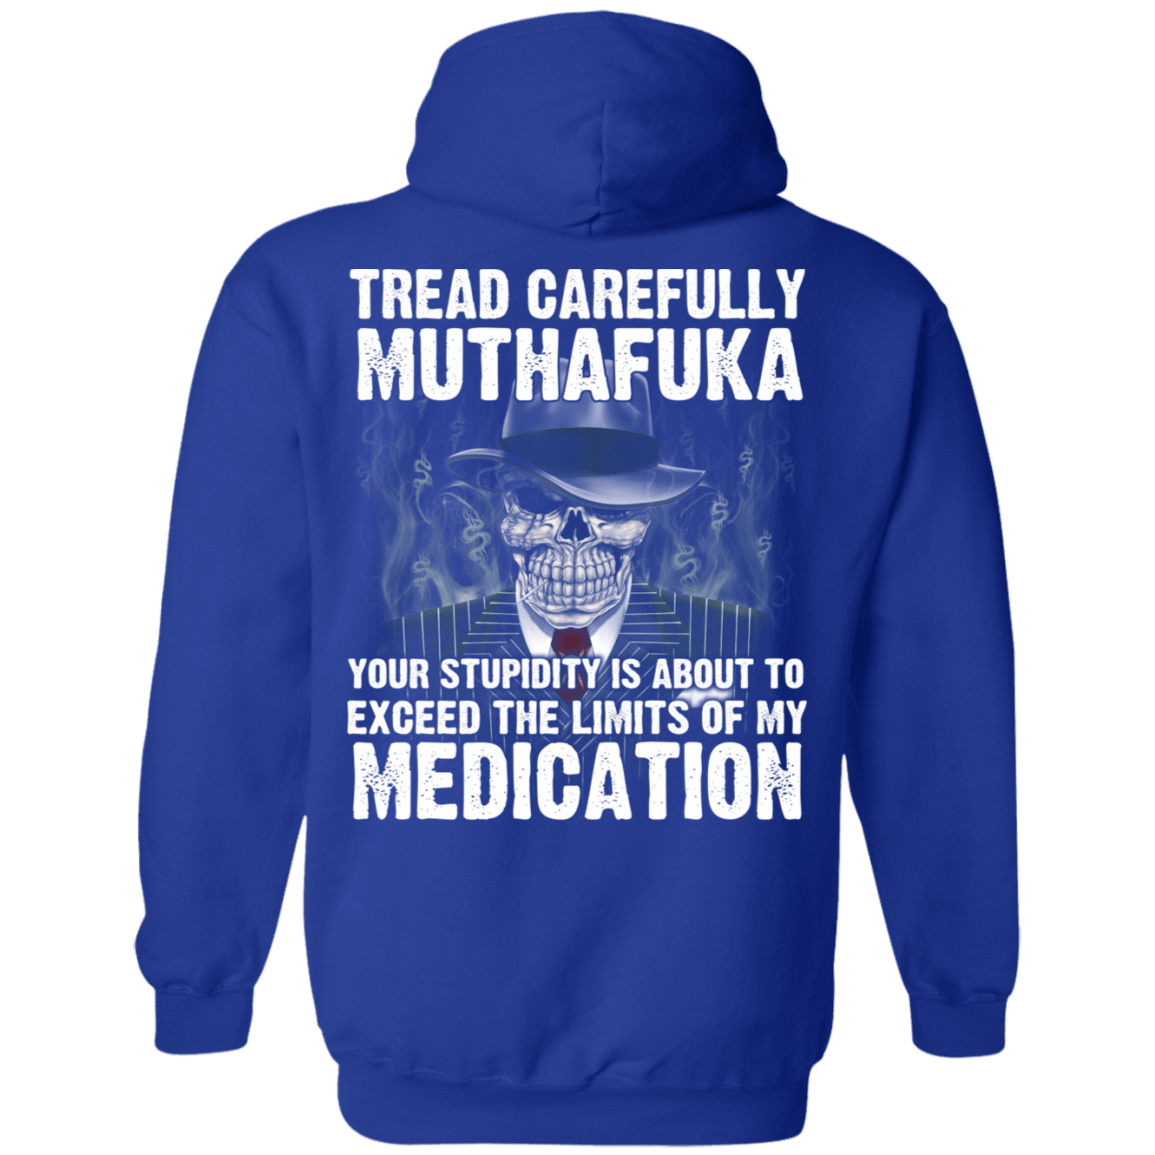 Tread Carefully Muthafuka Your Stupidity Is About To Exceed The Limits Of My Medication 541-4765-72709228-23175 - Tee Ript